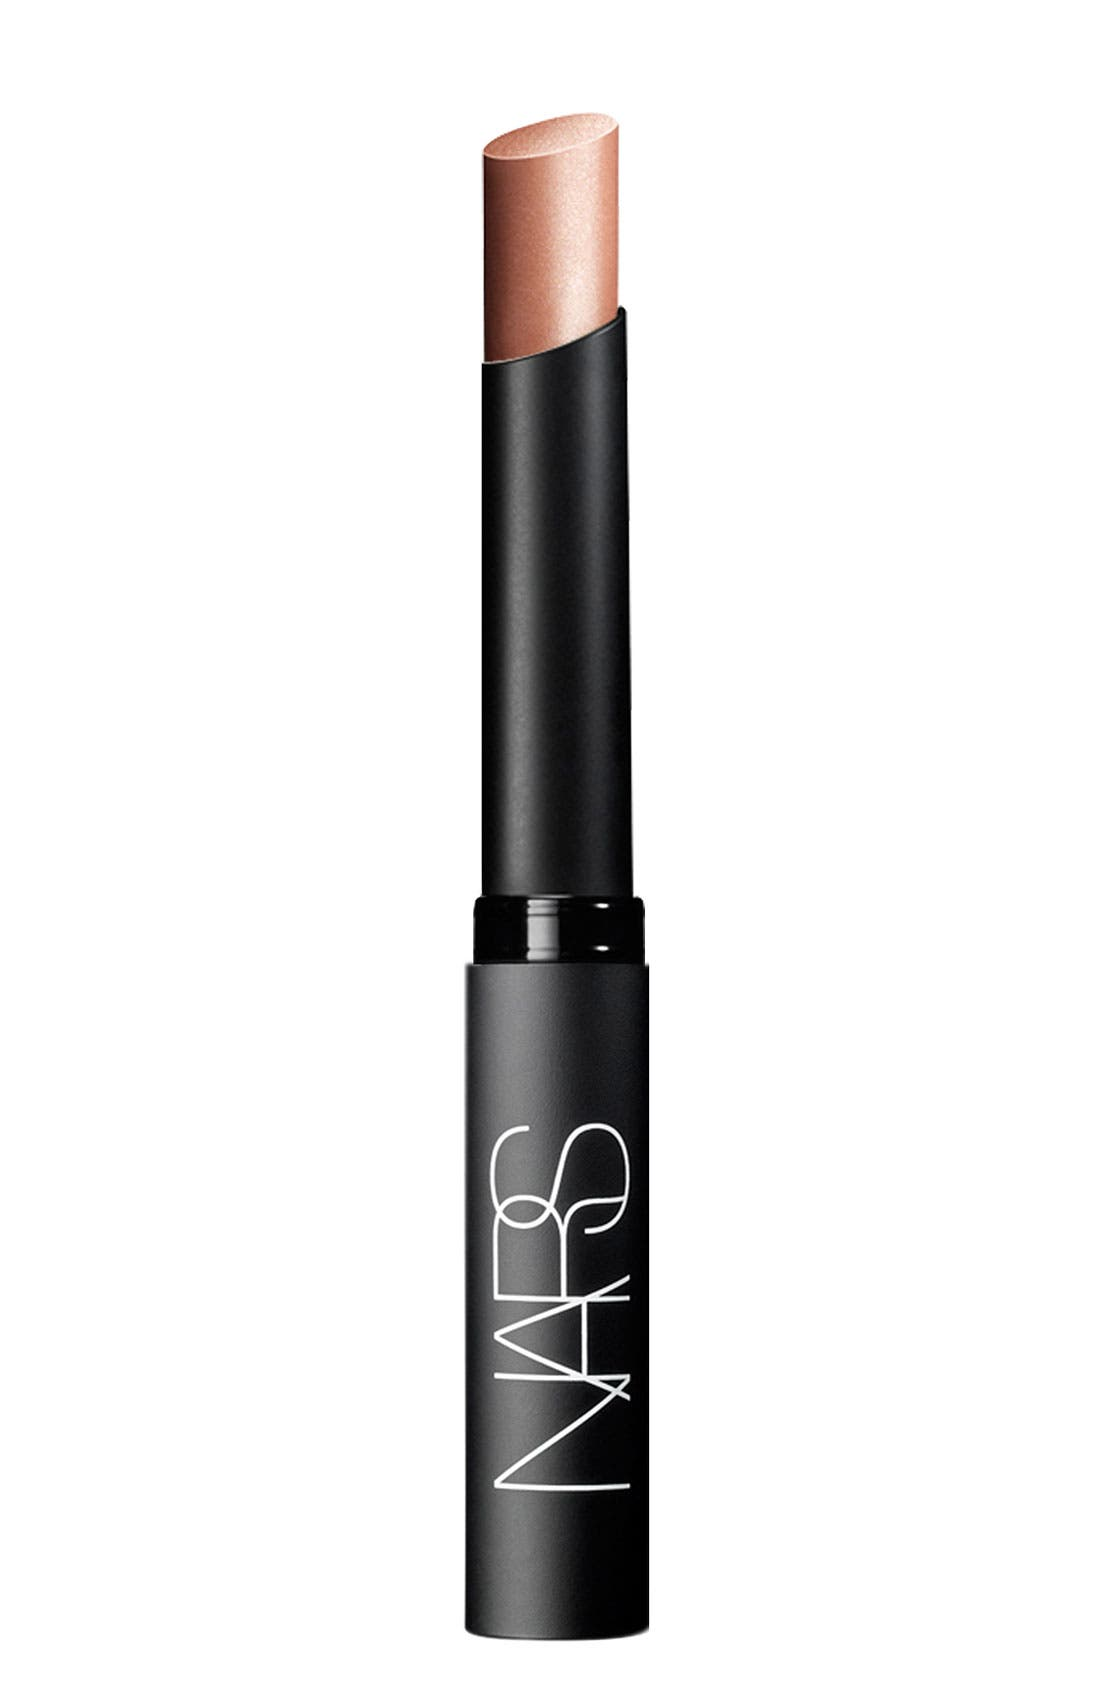 NARS,                             Pure Sheer Lip Treatment SPF 15,                             Main thumbnail 1, color,                             000